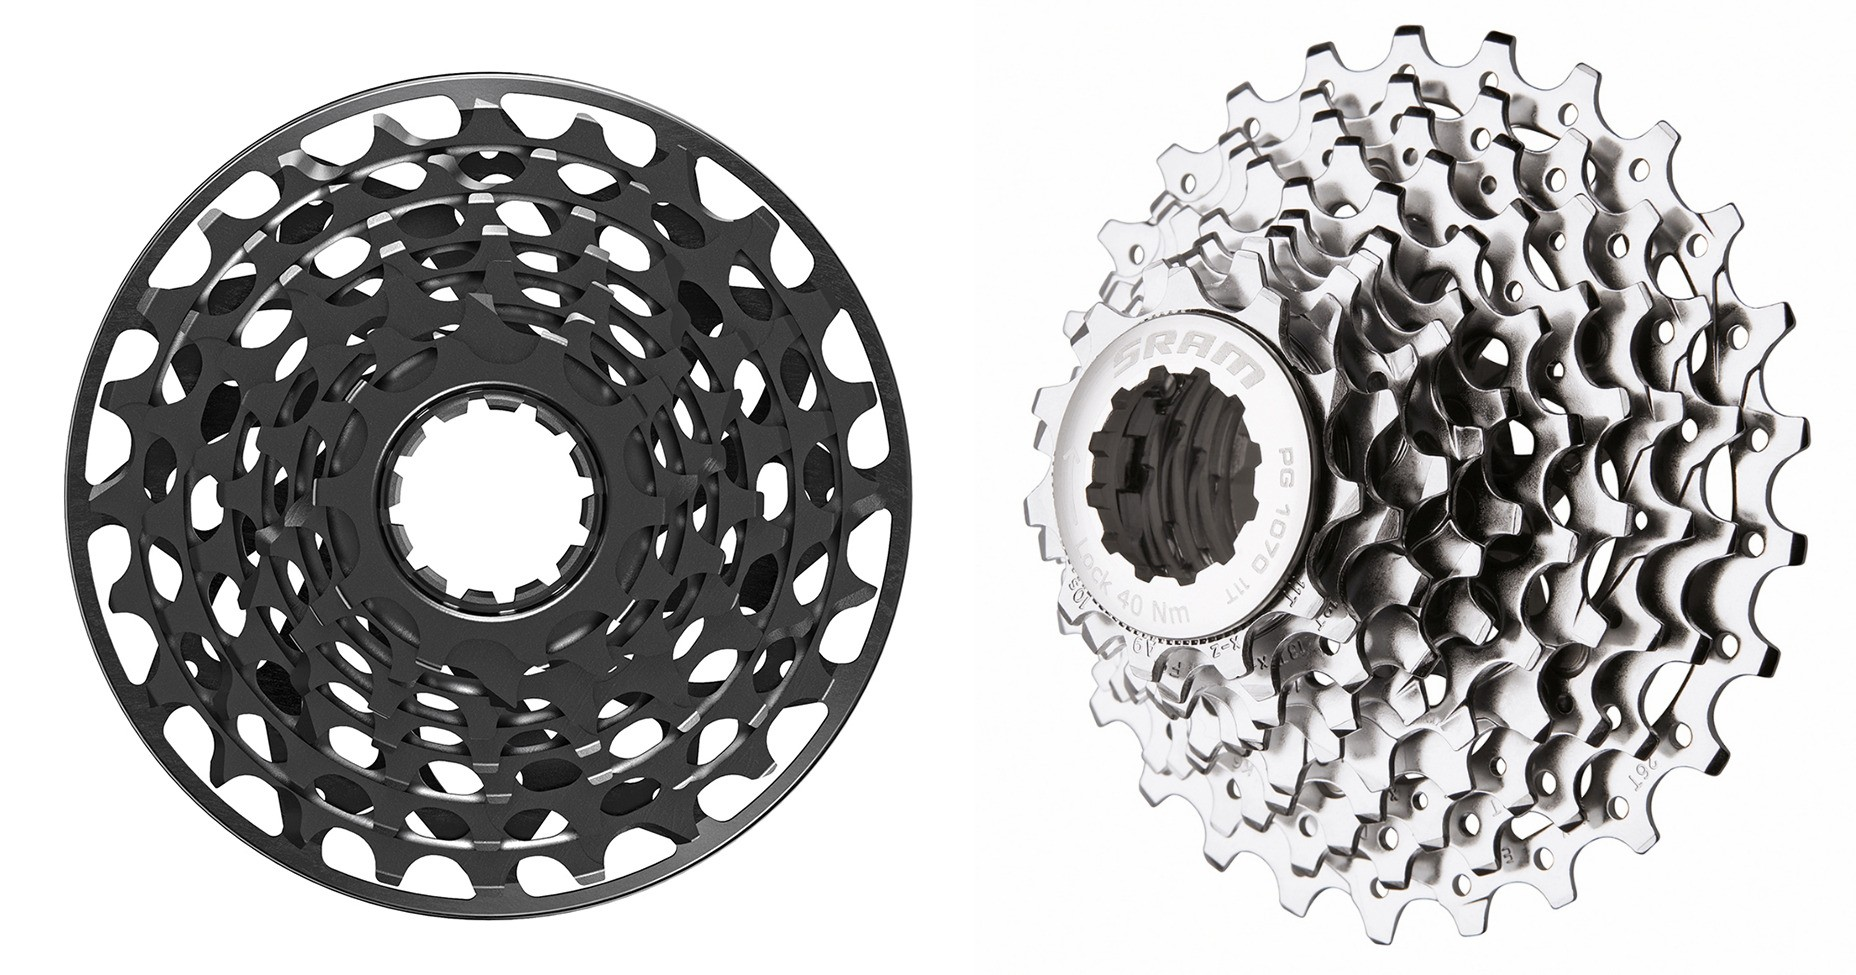 SRAM X01 DH 7-speed (l) and 10-speed (r) cassettes